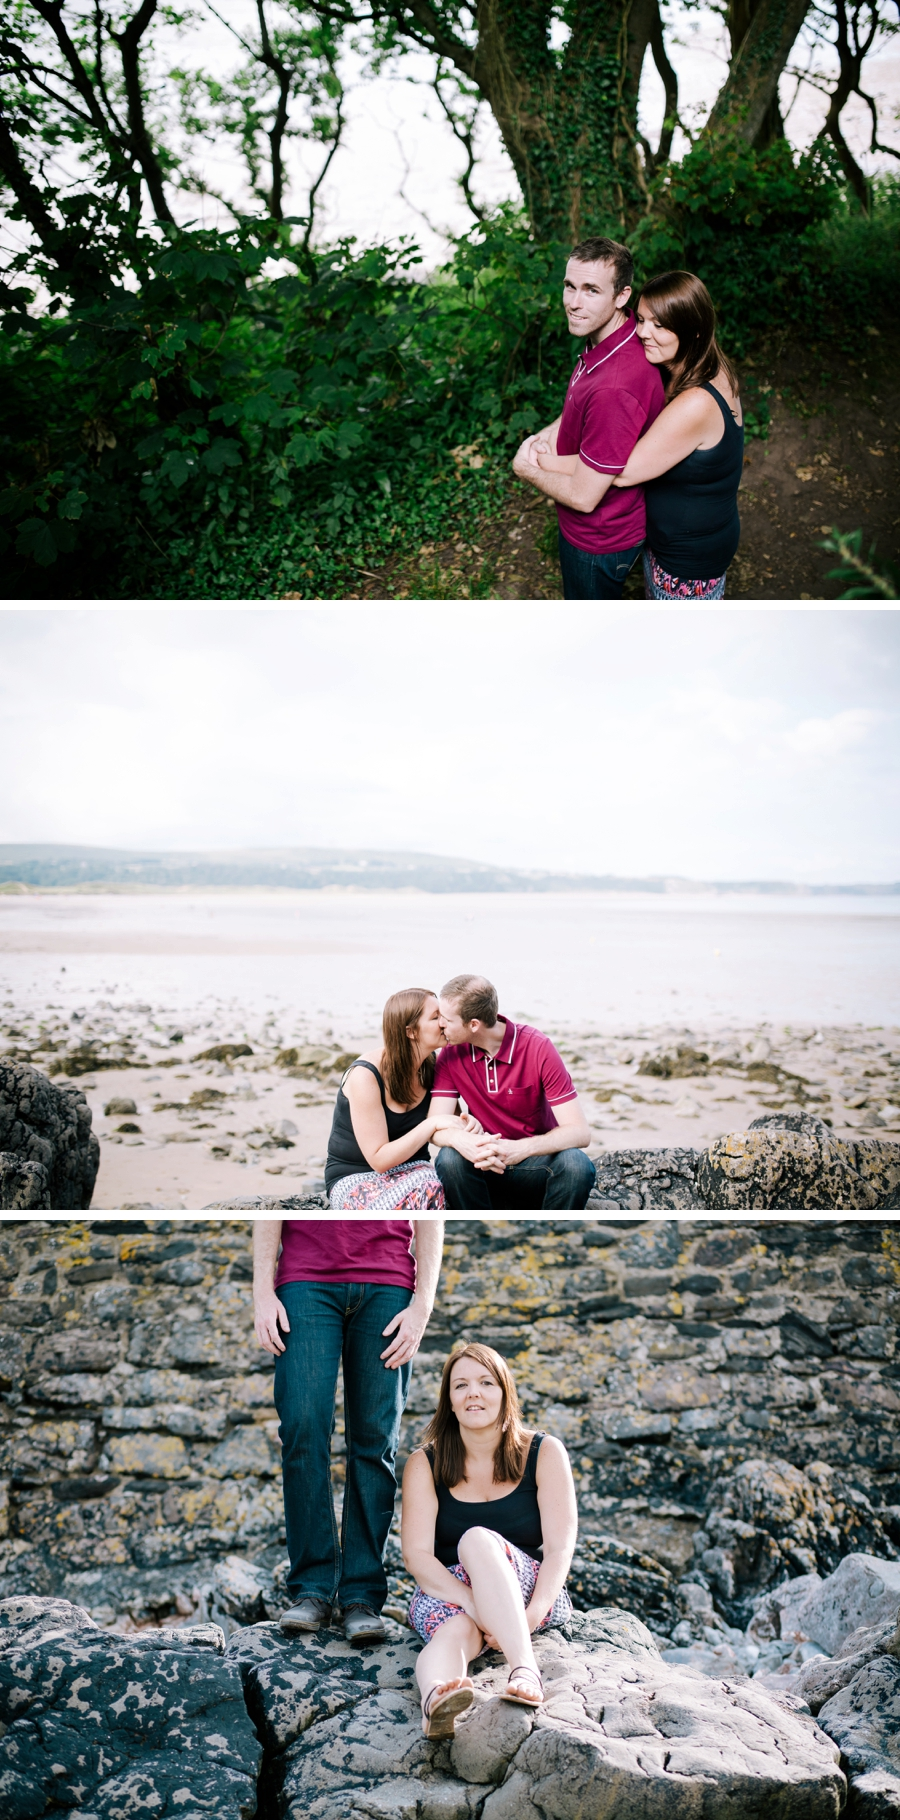 Somerset wedding photographer Gower coast engagement shoot Sarah and Andrew 5